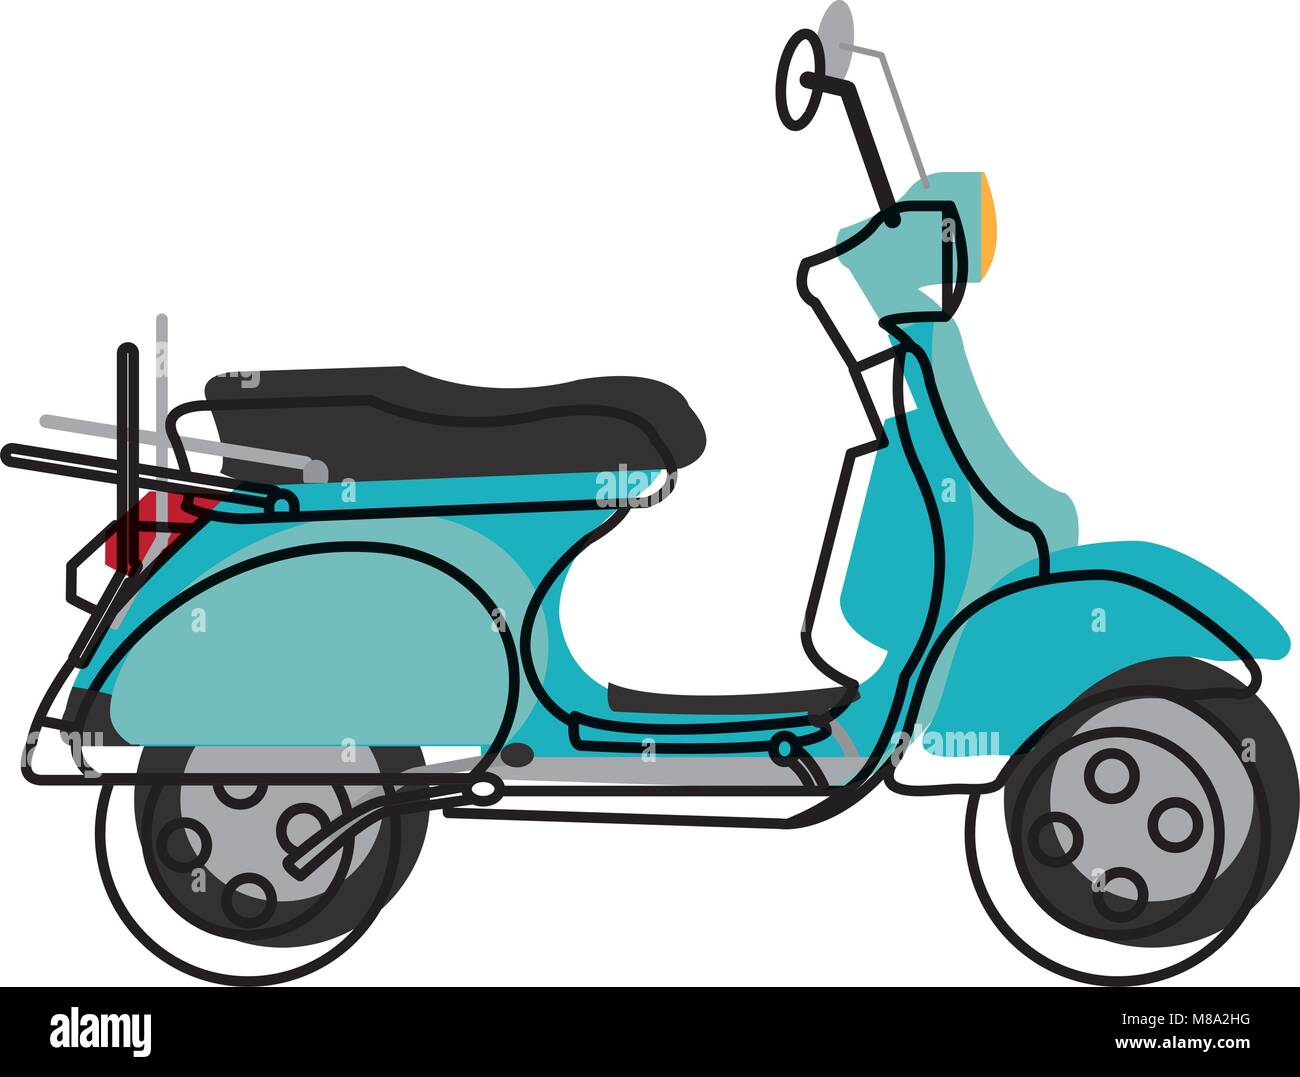 moved color motocycle transportation travel with mirror and wheels - Stock Vector